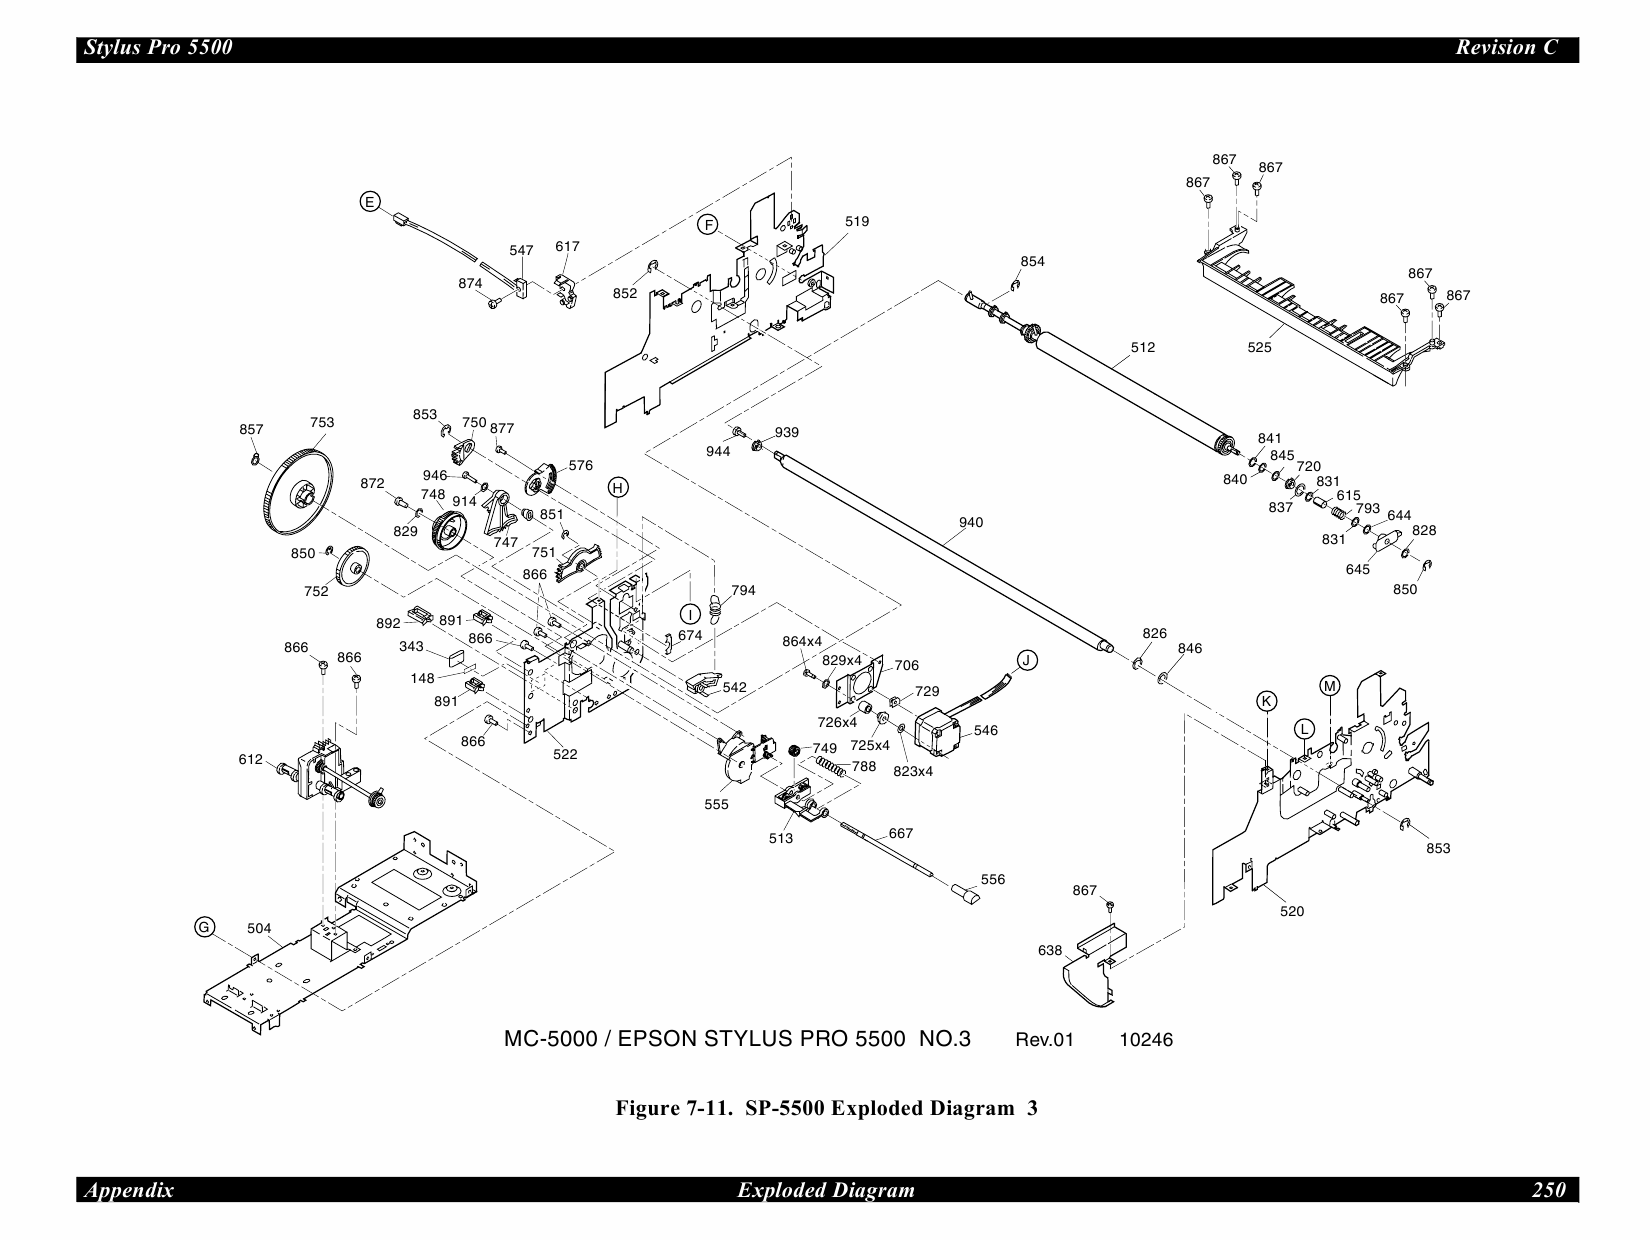 EPSON StylusPro 5500 Parts Manual-6